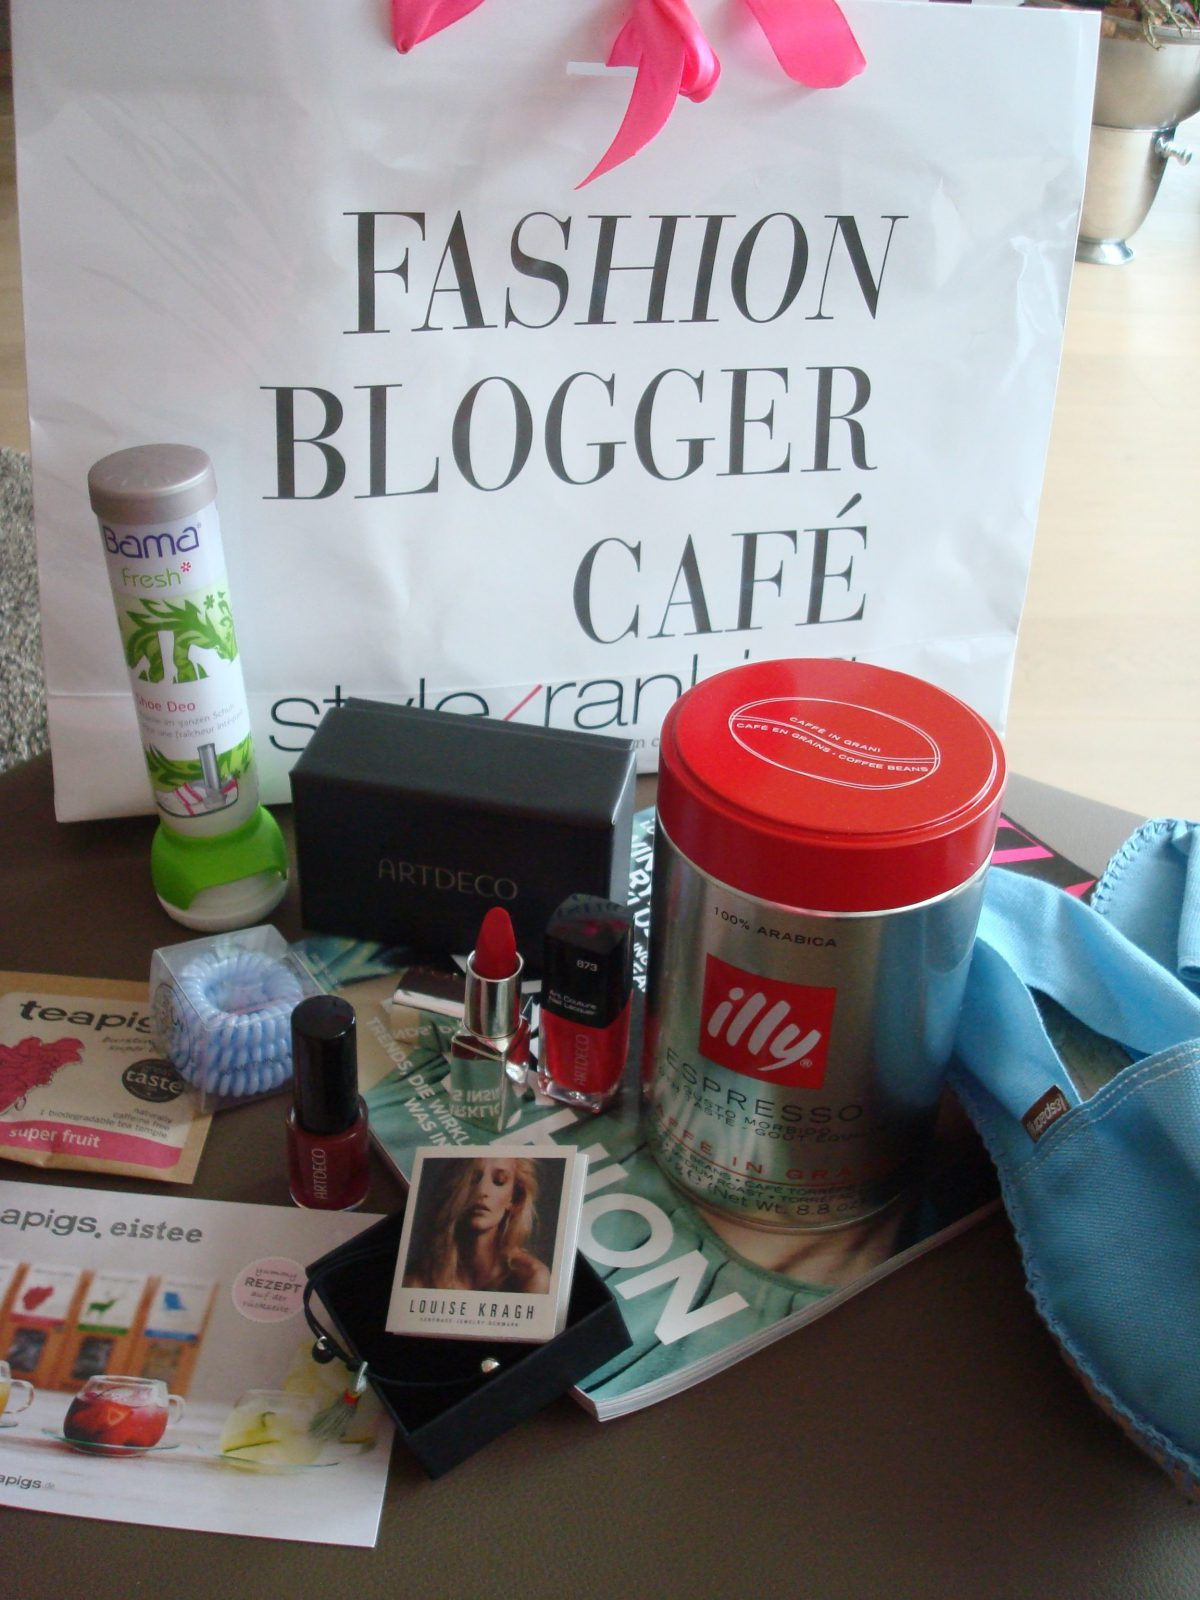 FASHION BLOGGER CAFÉ